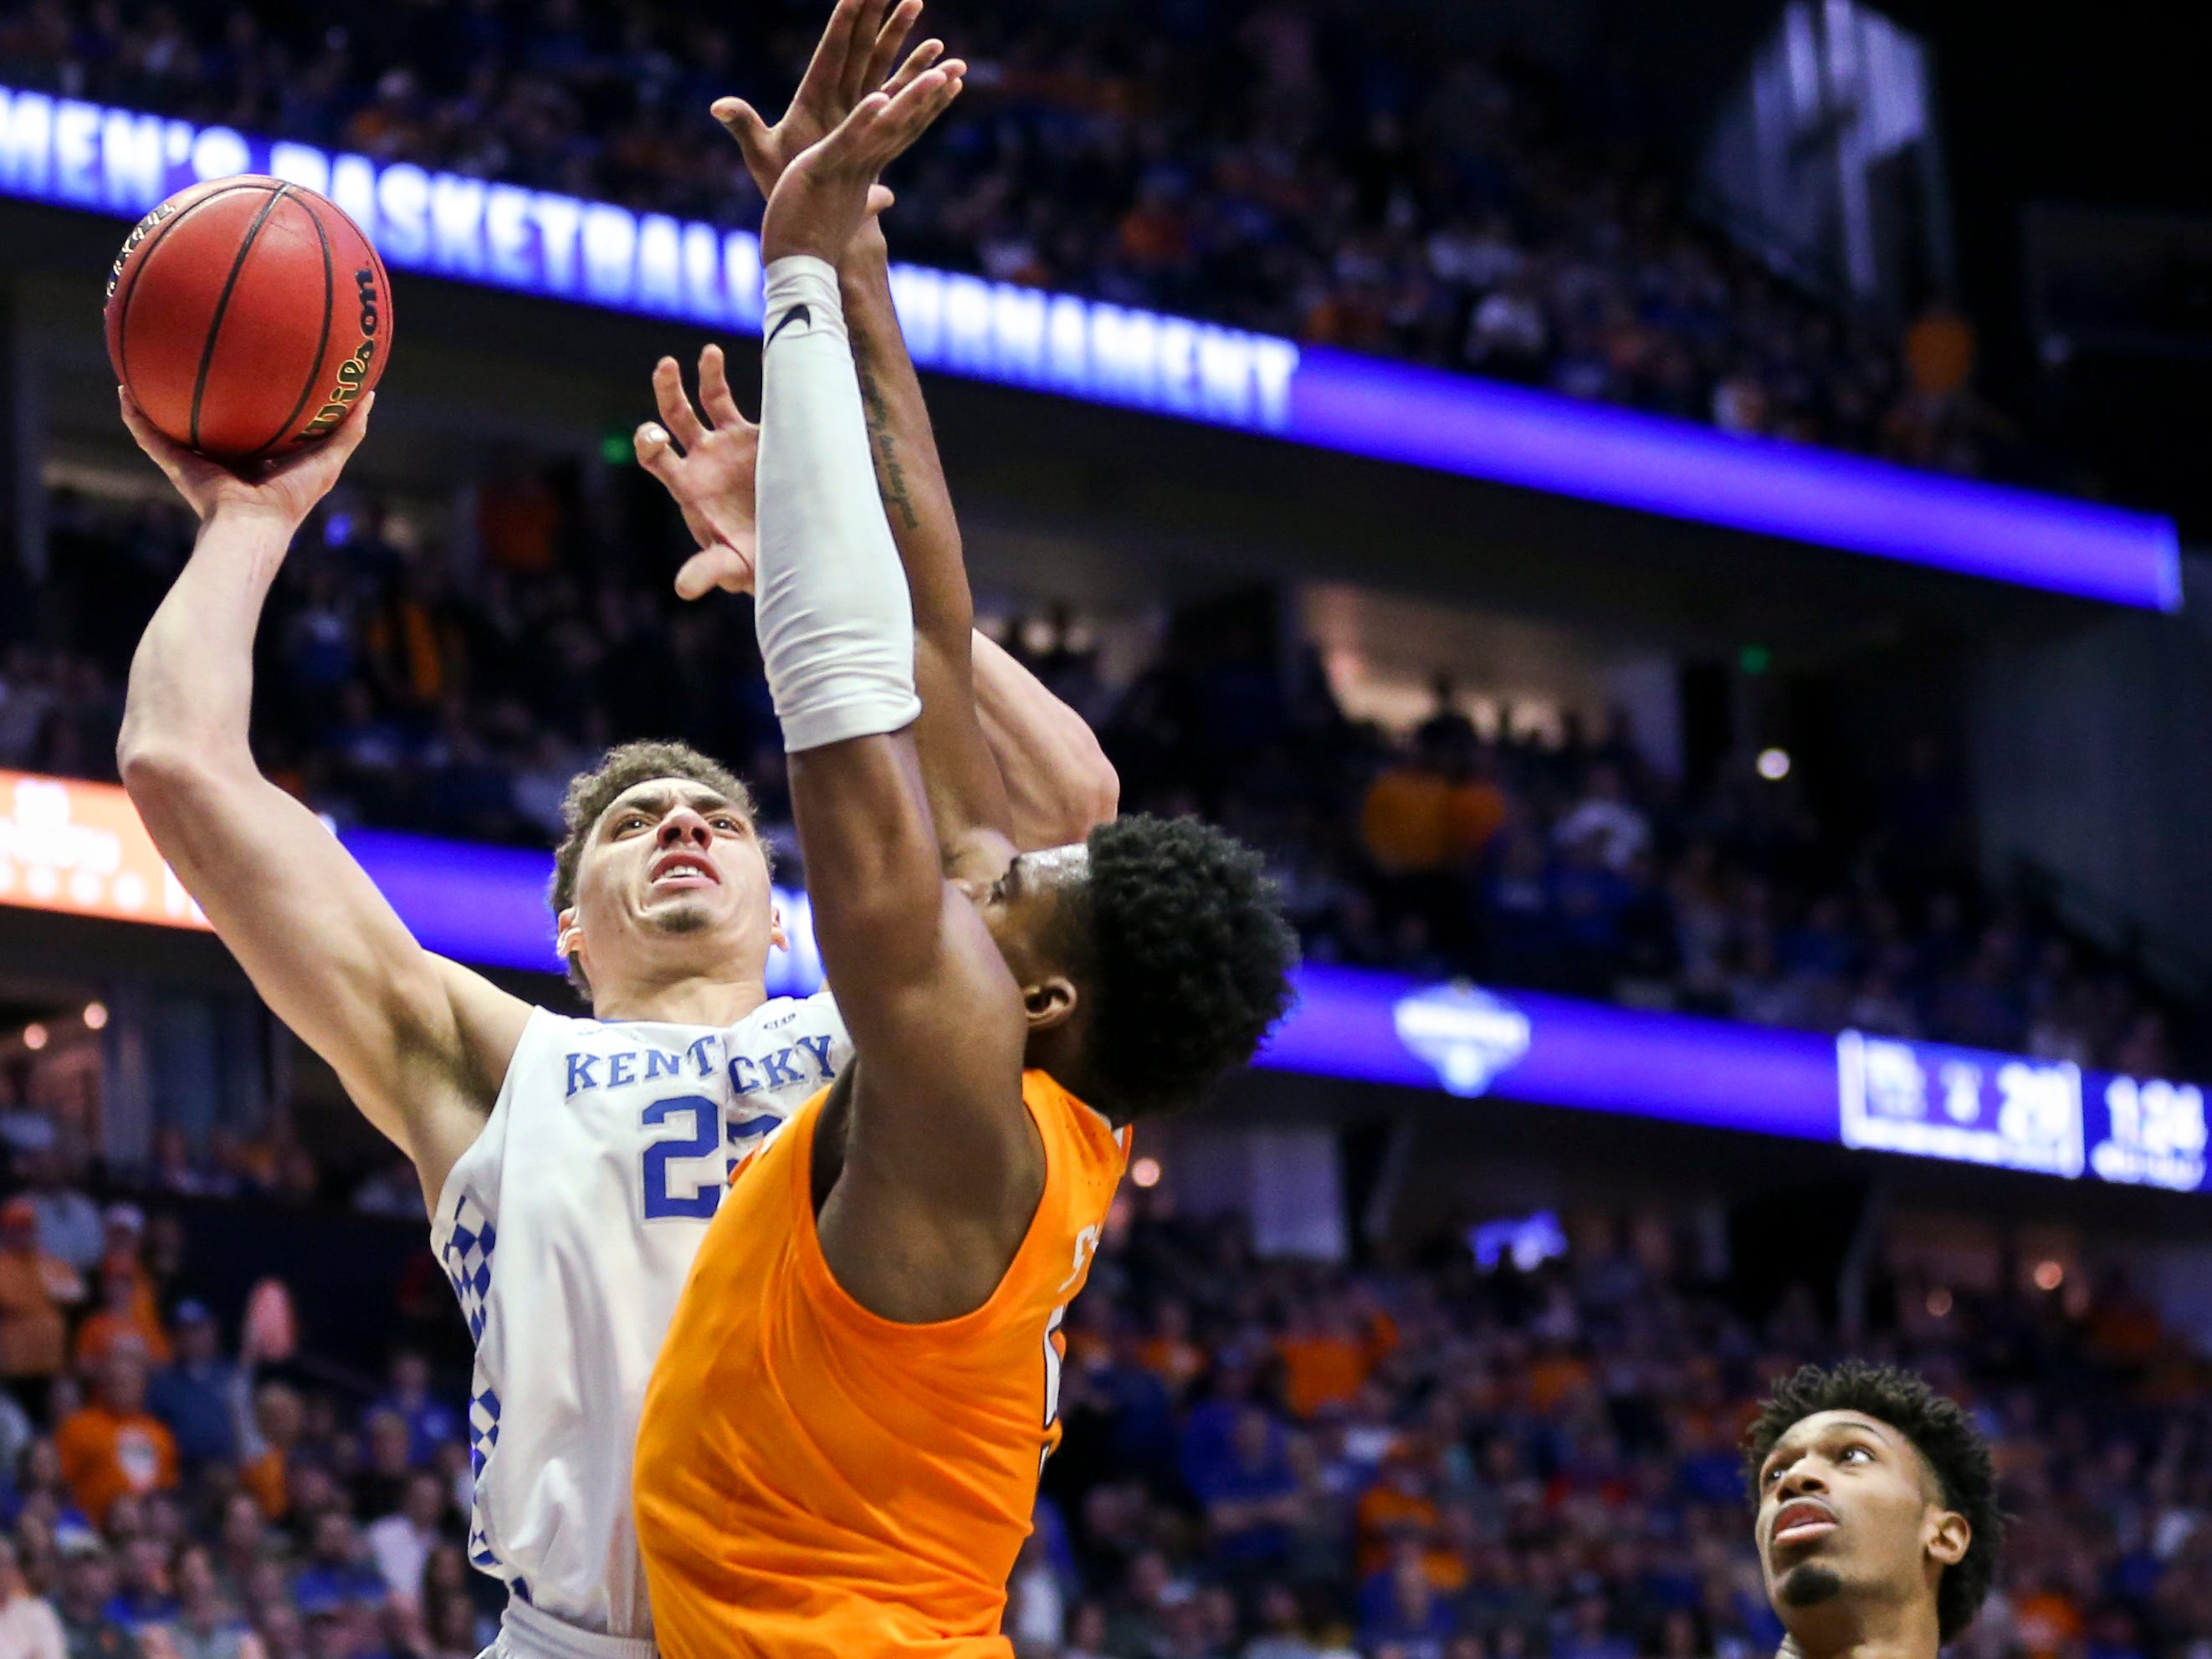 Kentucky forward Reid Travis (22) shoots over Tennessee guard Admiral Schofield (5) during the first half of the SEC Men's Basketball Tournament semifinal game at Bridgestone Arena in Nashville, Tenn., Saturday, March 16, 2019.